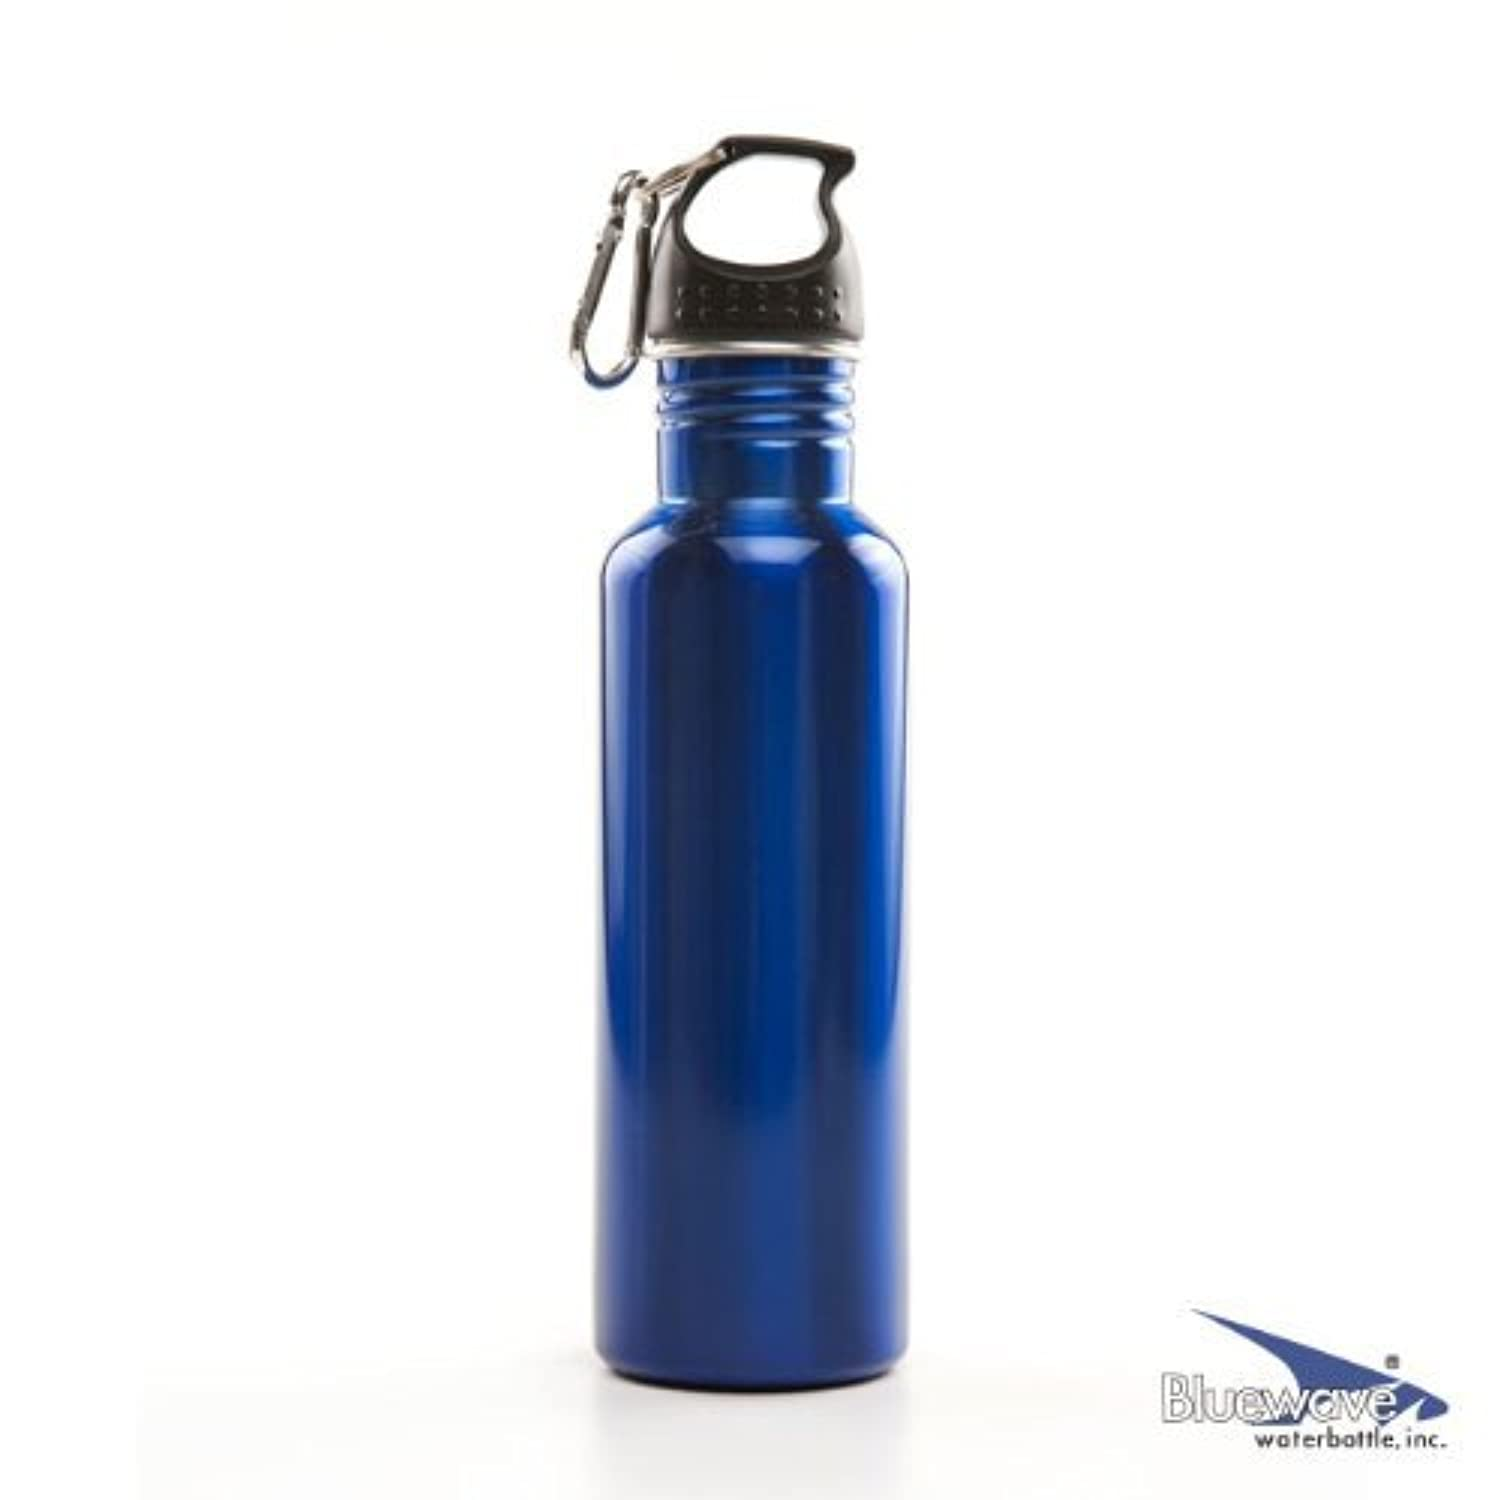 Bluewave BPA Free Stainless Steel Sports Water Bottle - 0.75 Liter (28 oz) Steel by Bluewave Lifestyle?つ?